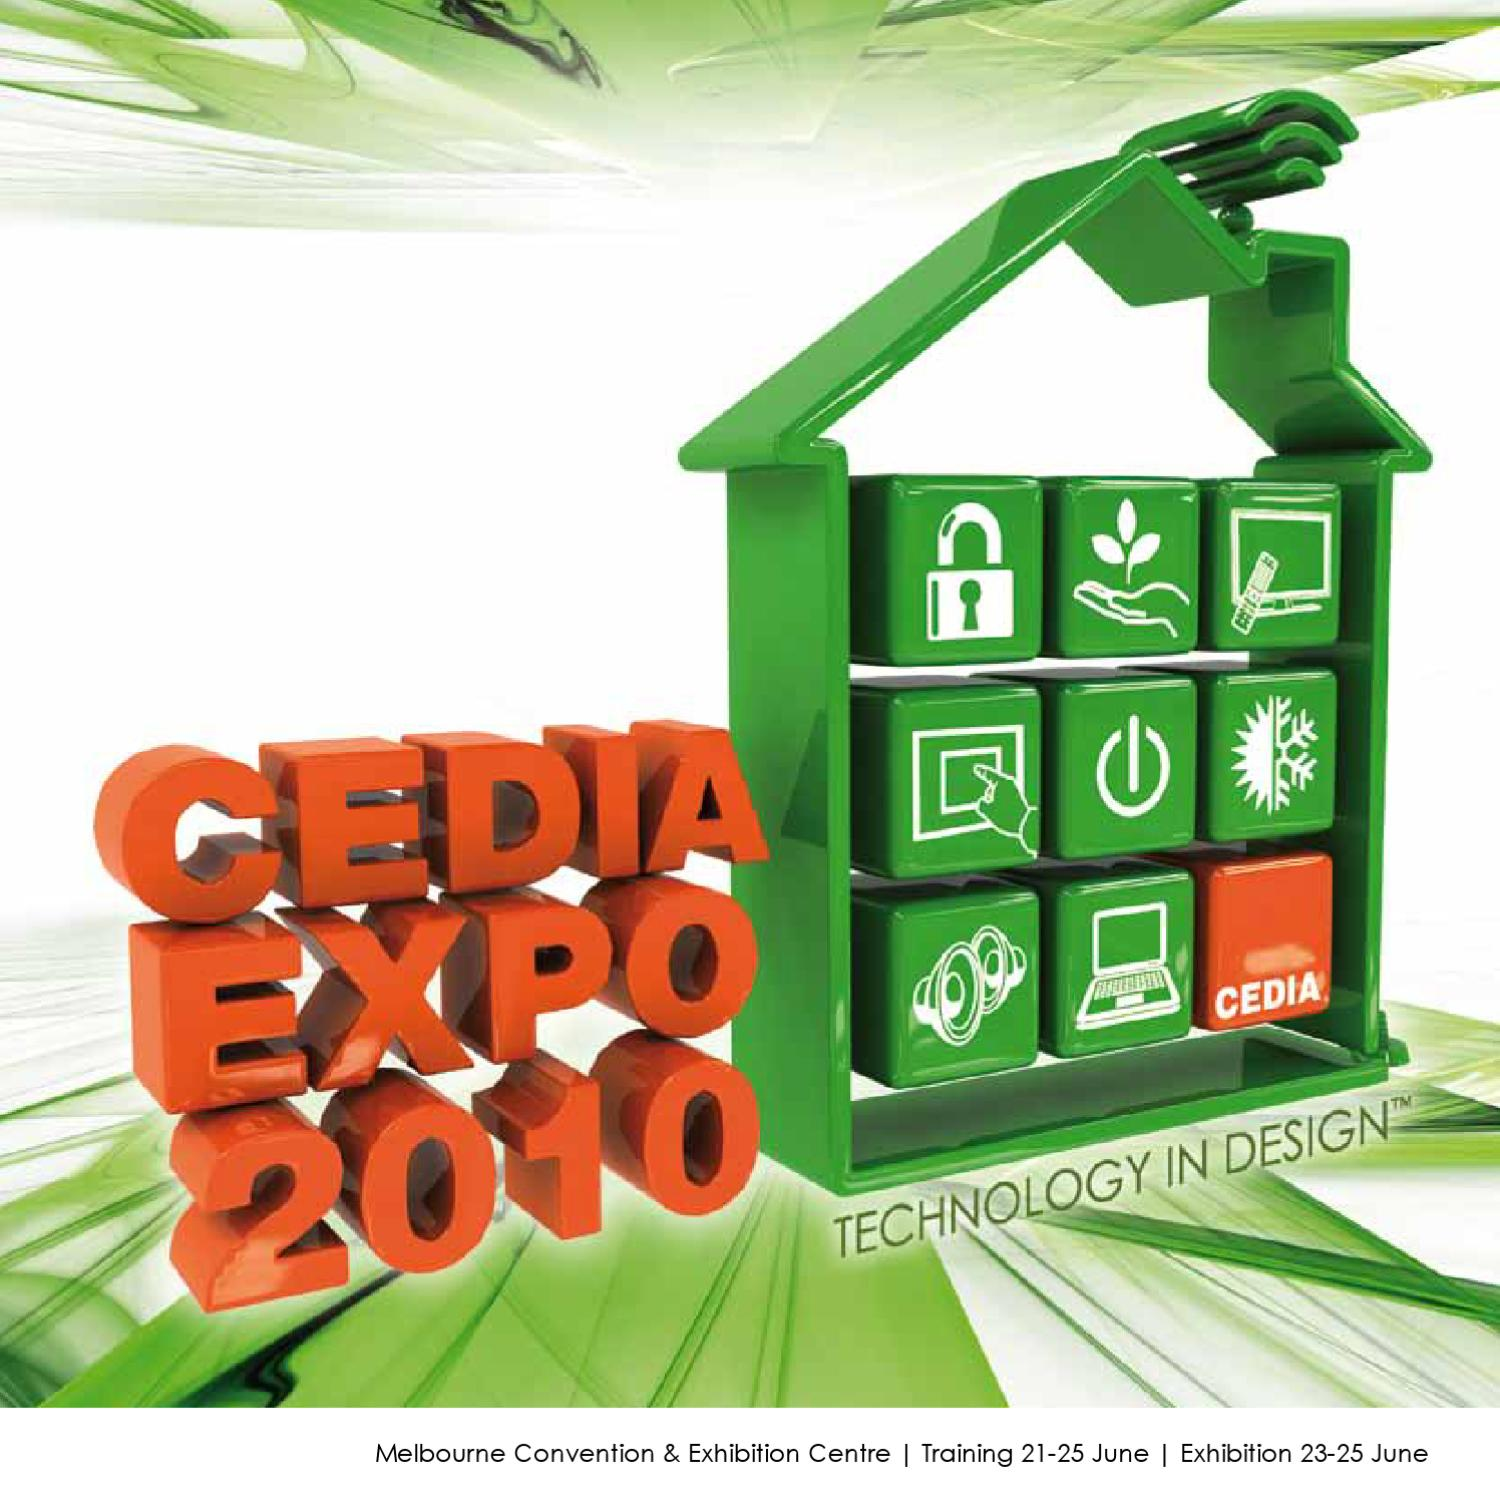 Cedia Exhibitor List Cedia Expo 2010 Show Guide By Cedia Issuu